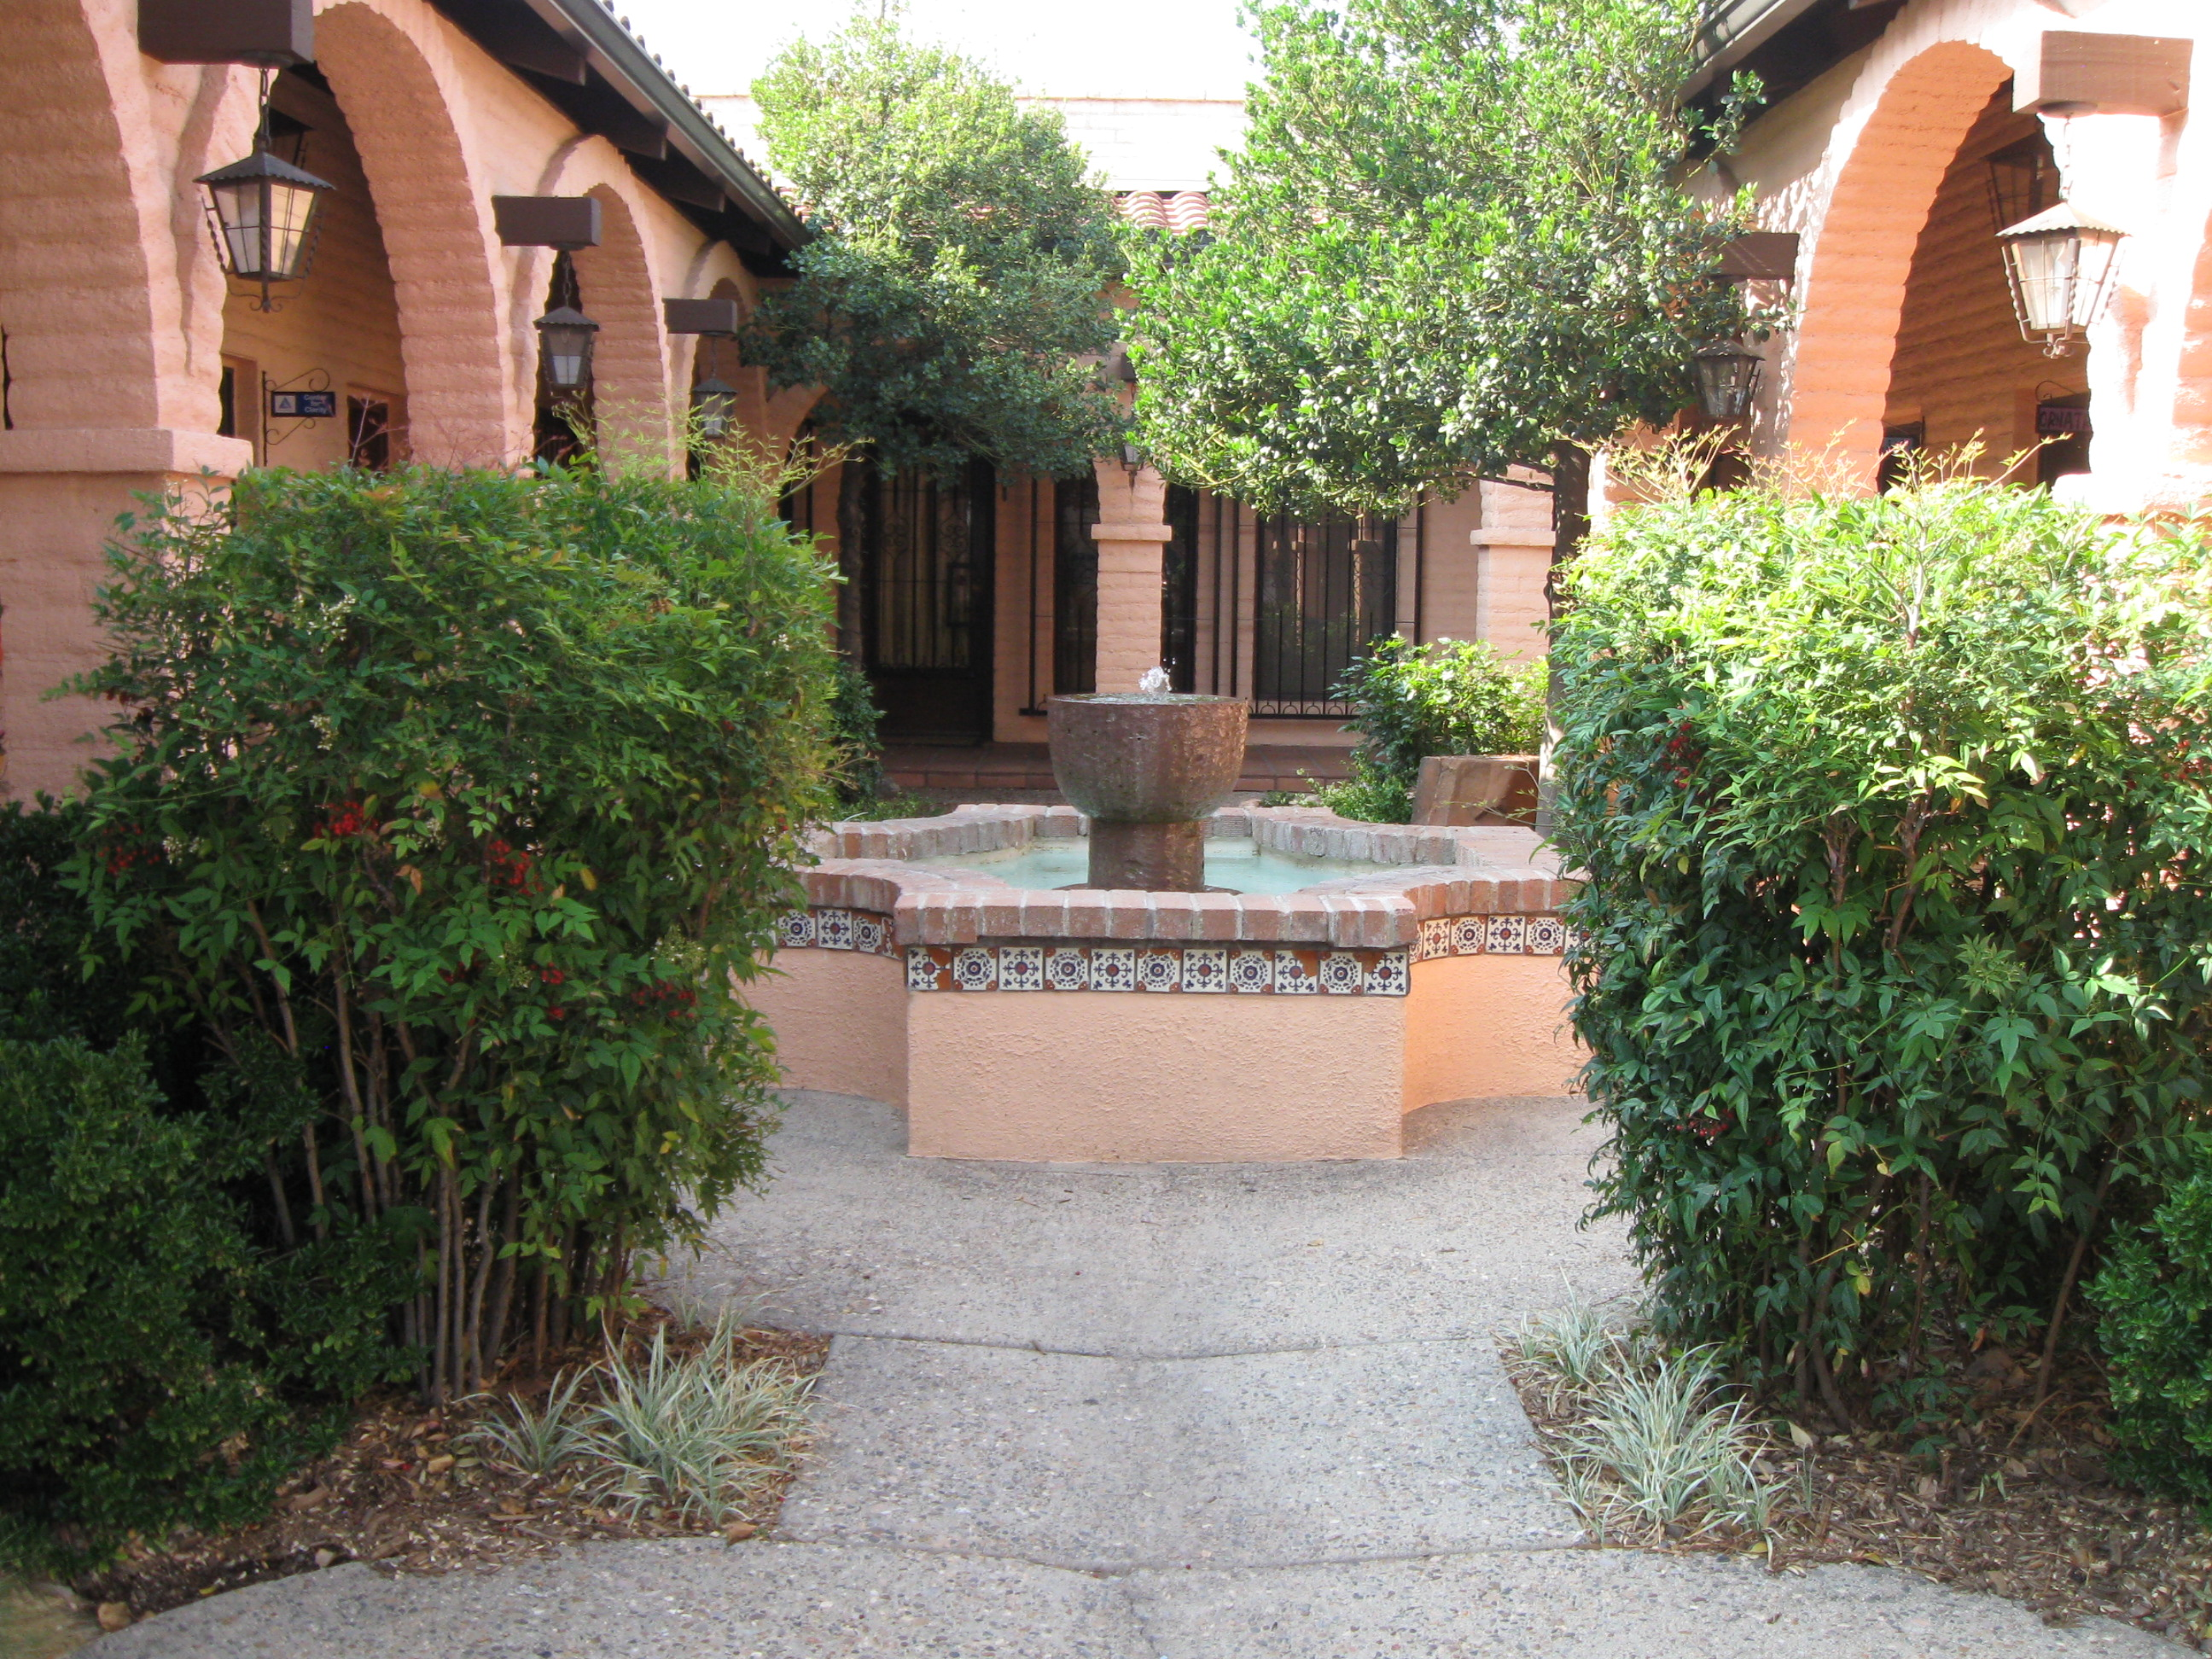 The Courtyard at A Small Art Gallery